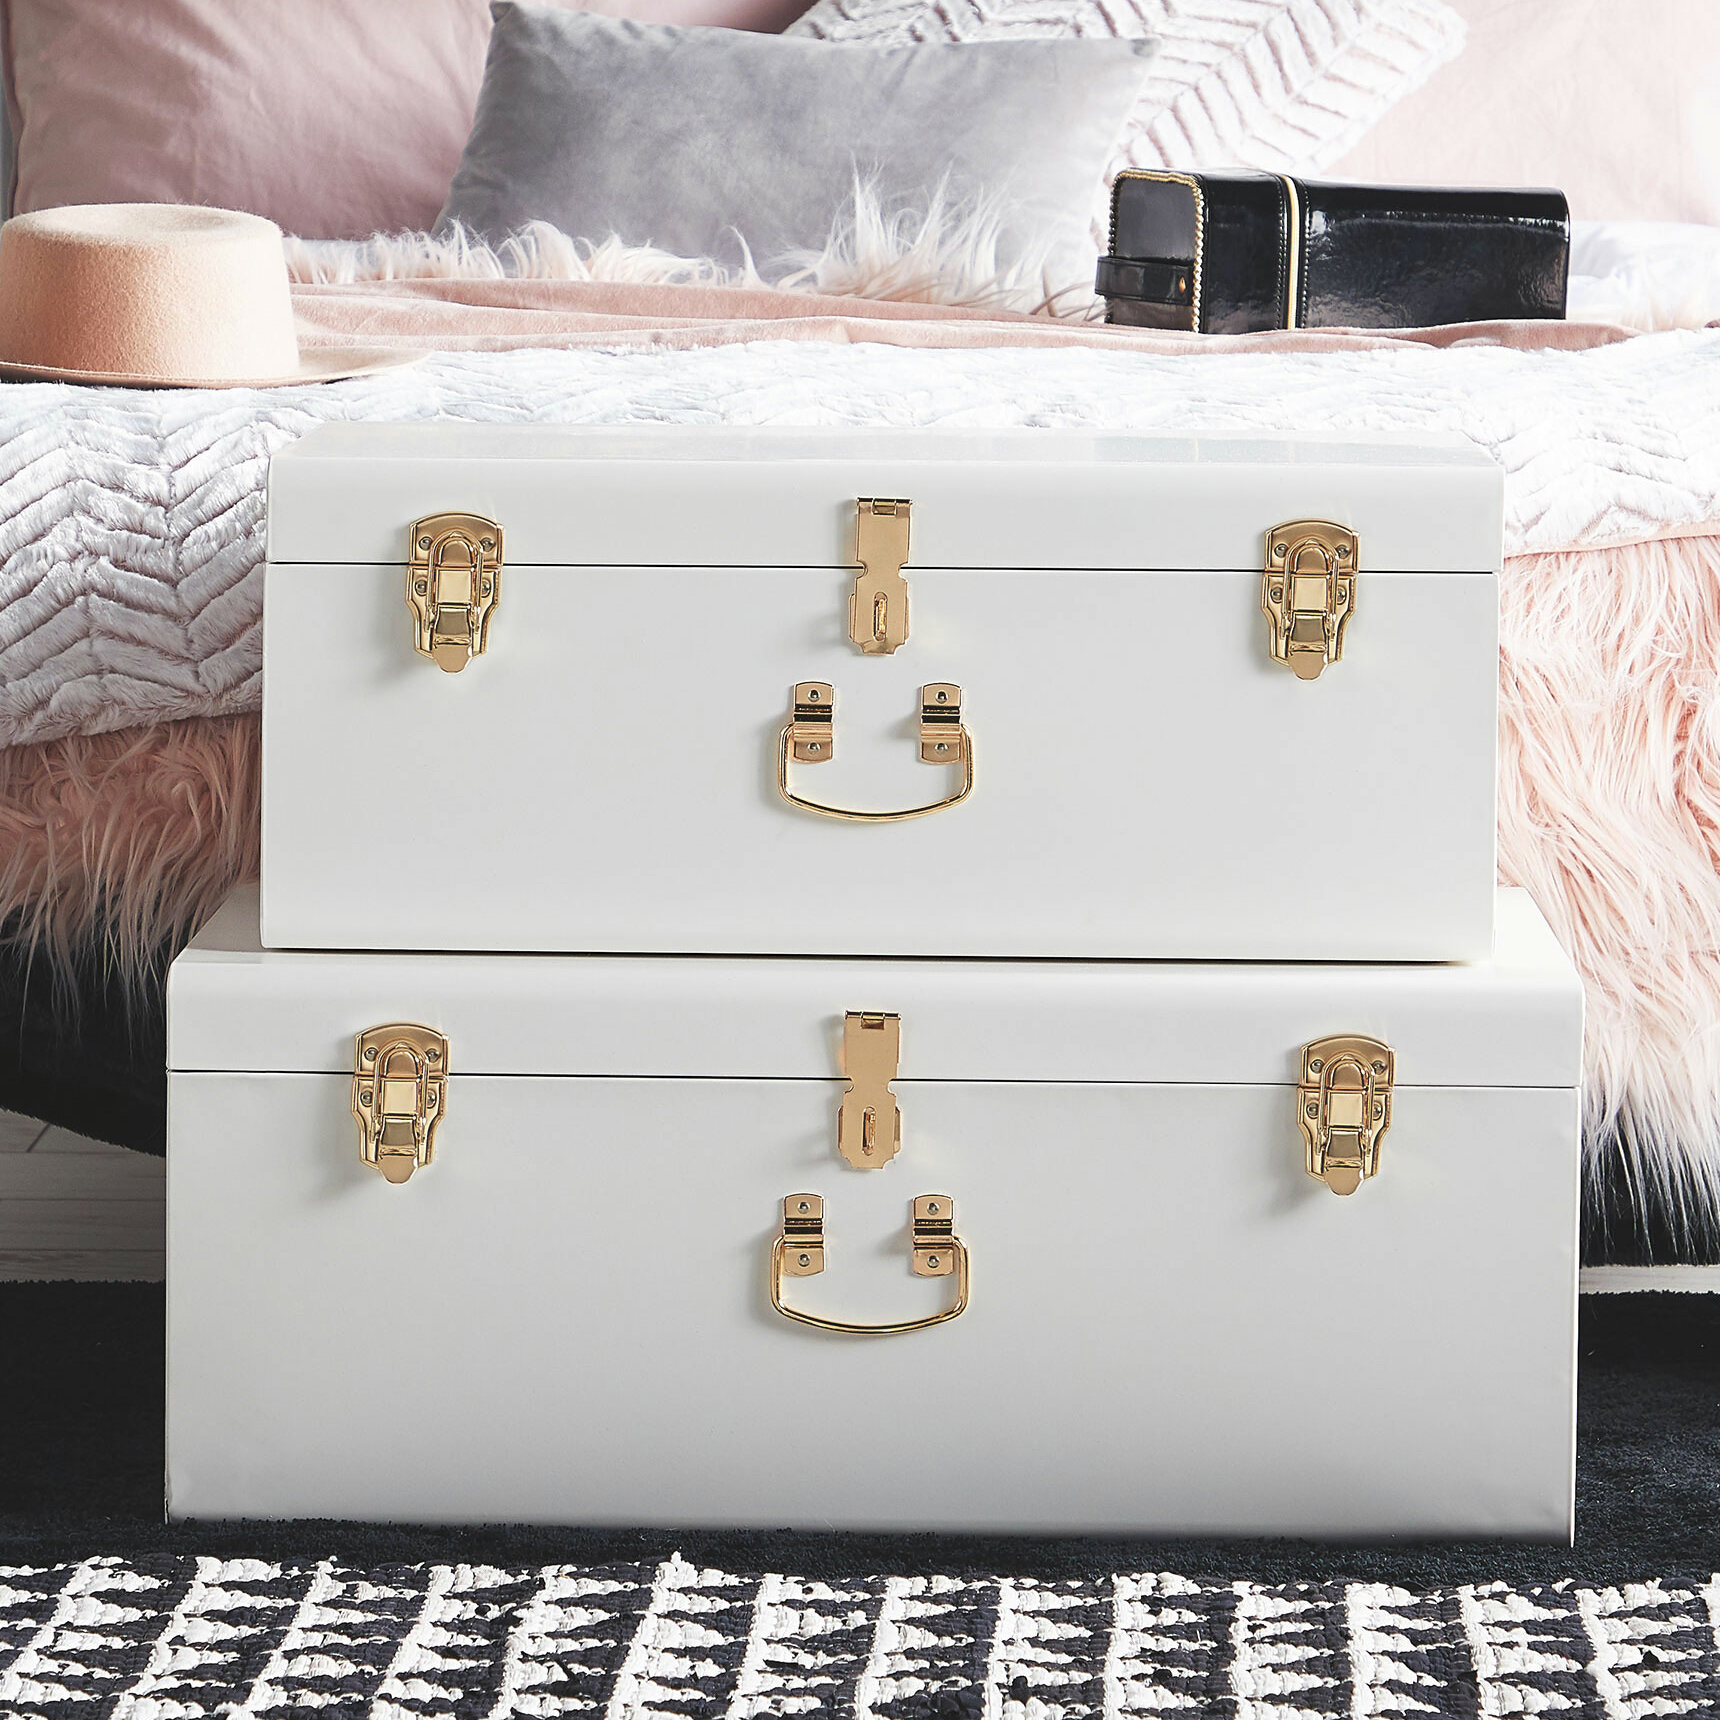 Dressing Room Stackable Vintage Suitcase Style for Bedroom Living Room Set of 3 Grey White and Blush with Gold Hardware Hallway Beautify Metal Storage Trunks